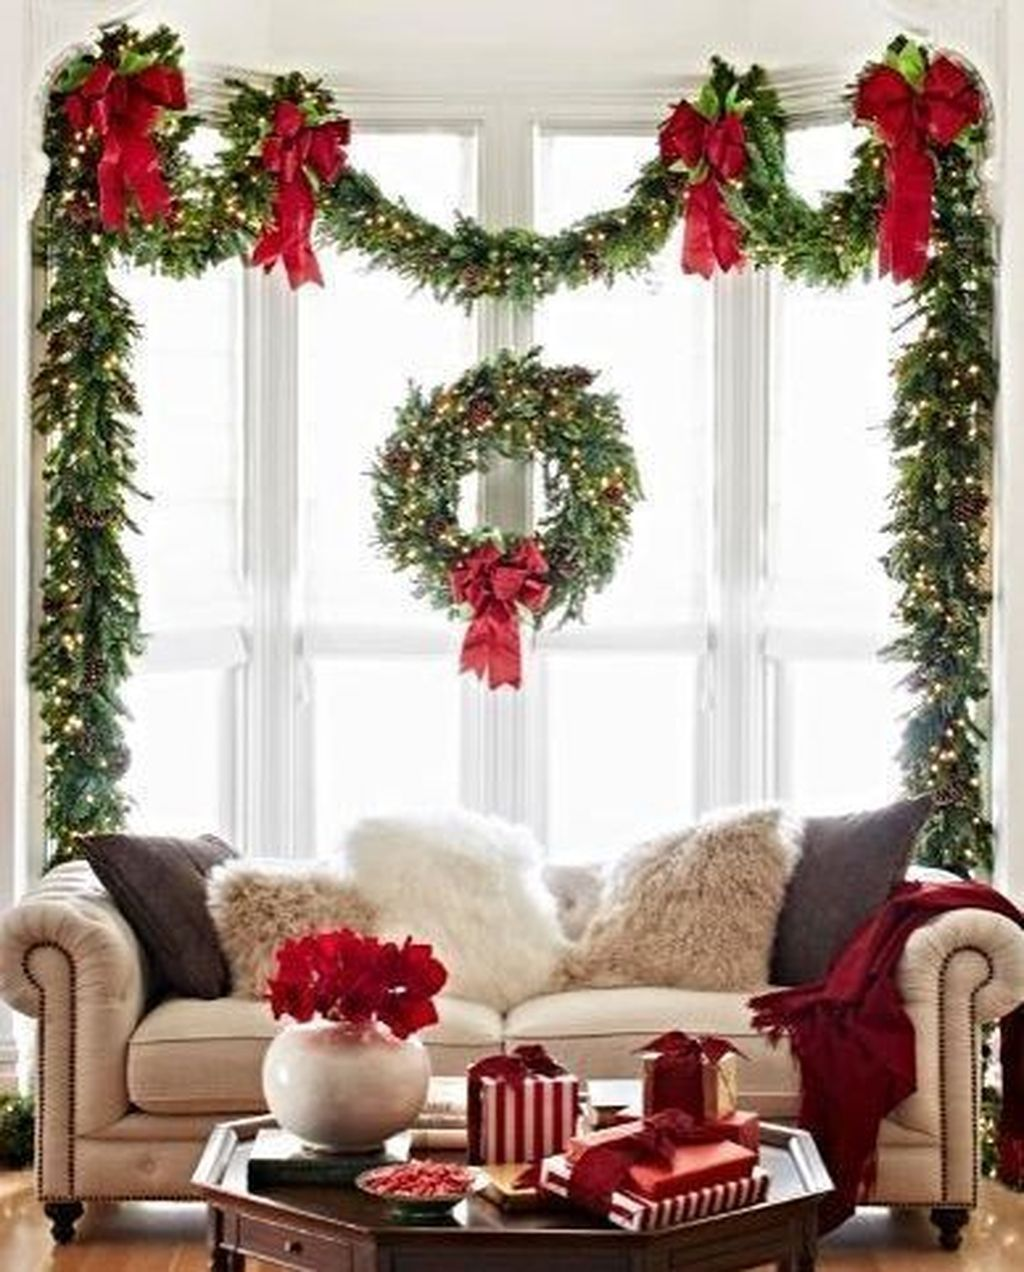 49 Easy Natural Christmas Apartment Decorating Ideas | Home